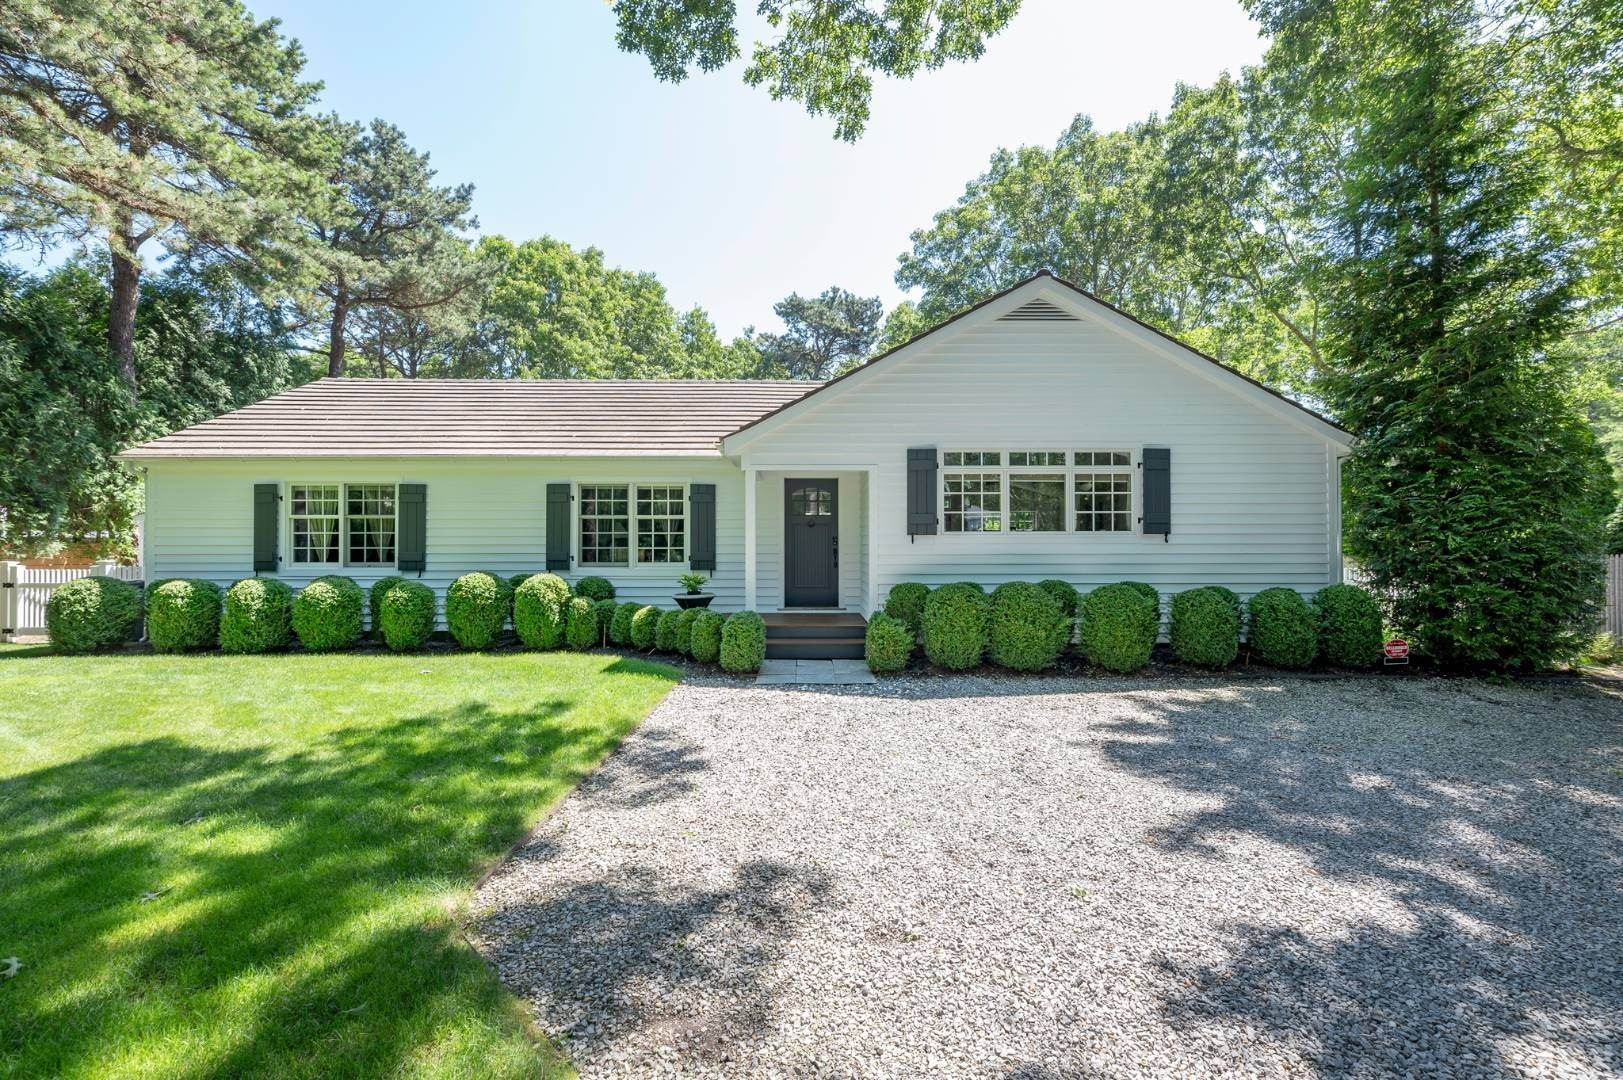 Single Family Home for Sale at Modern Charm In Wainscott 32 East Gate Road, Wainscott, NY 11975